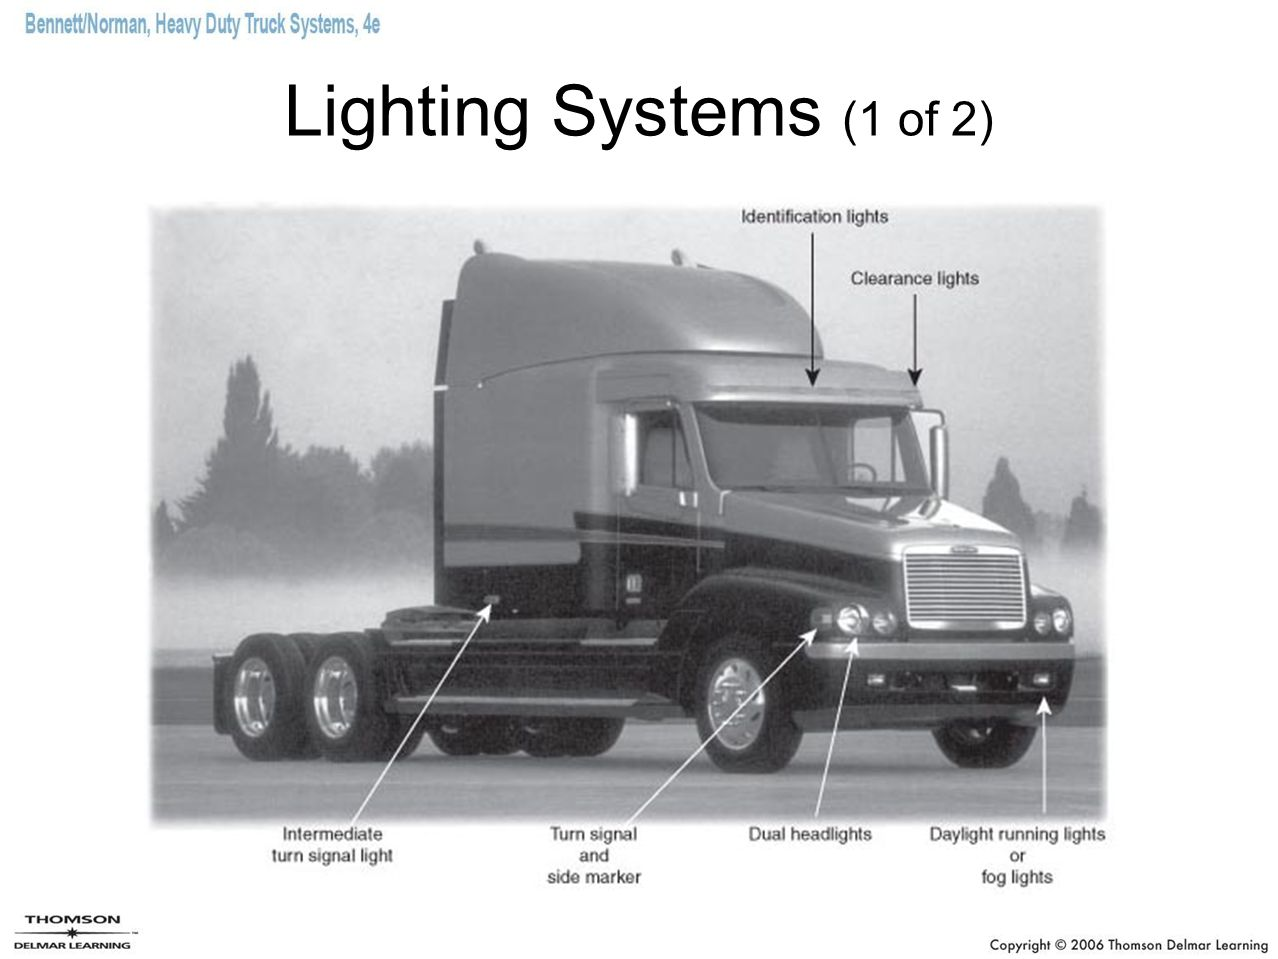 Lighting Systems (1 of 2)